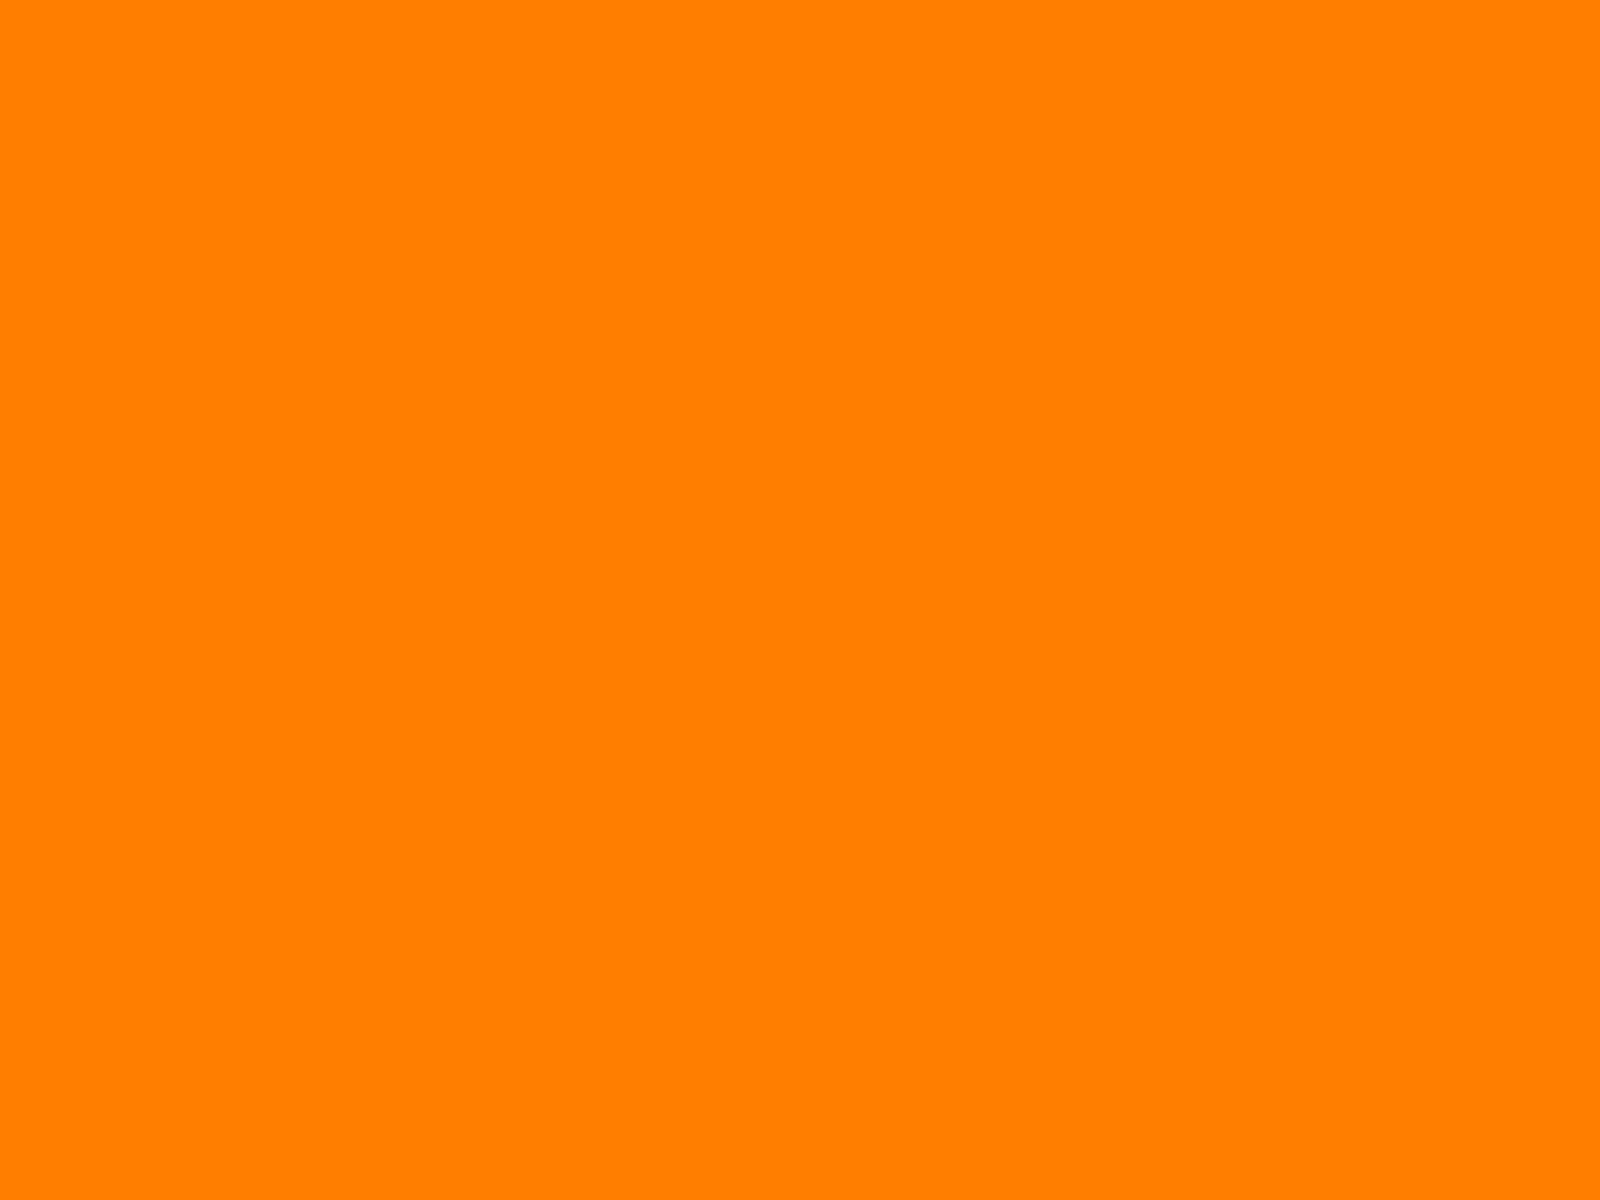 Solid Color Orange Image 1600x1200